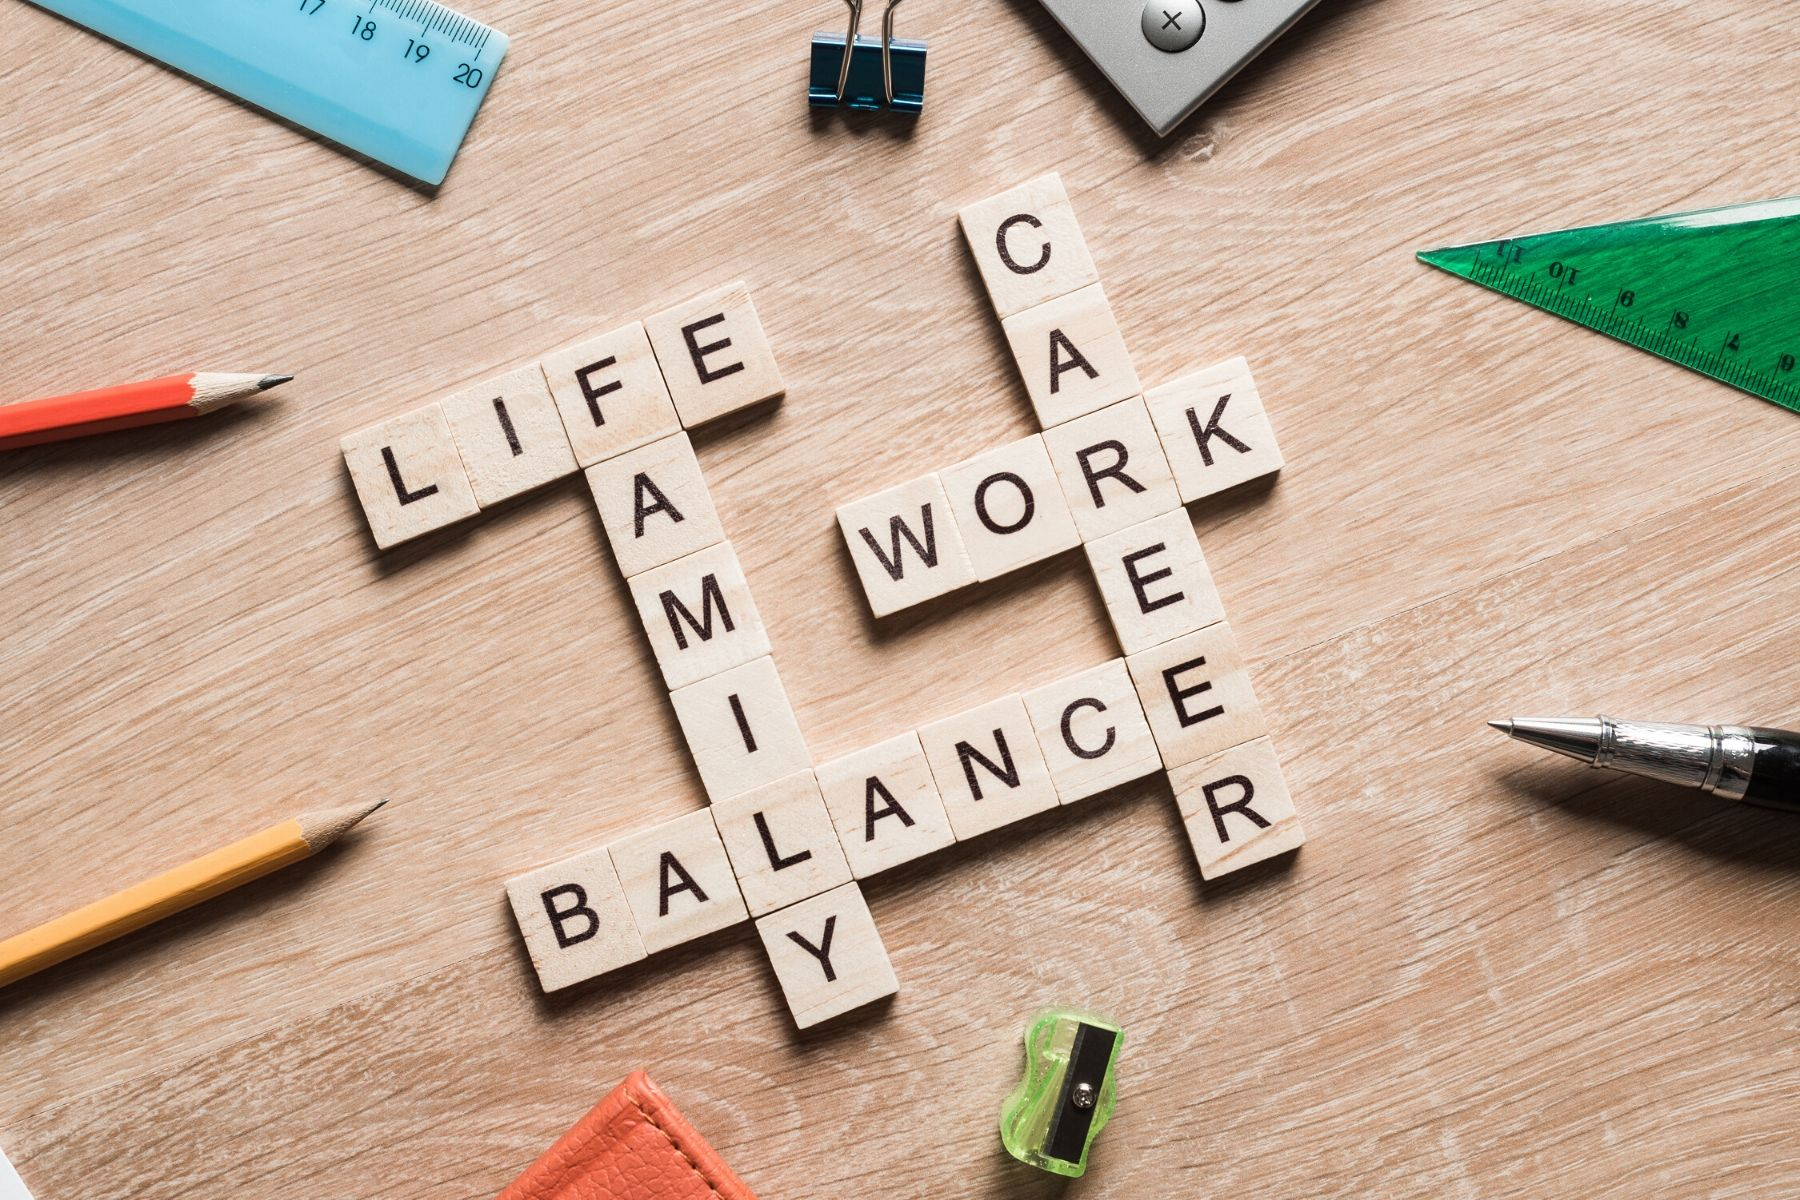 HappyFresh_Work_Life_Balance_Cross_Word